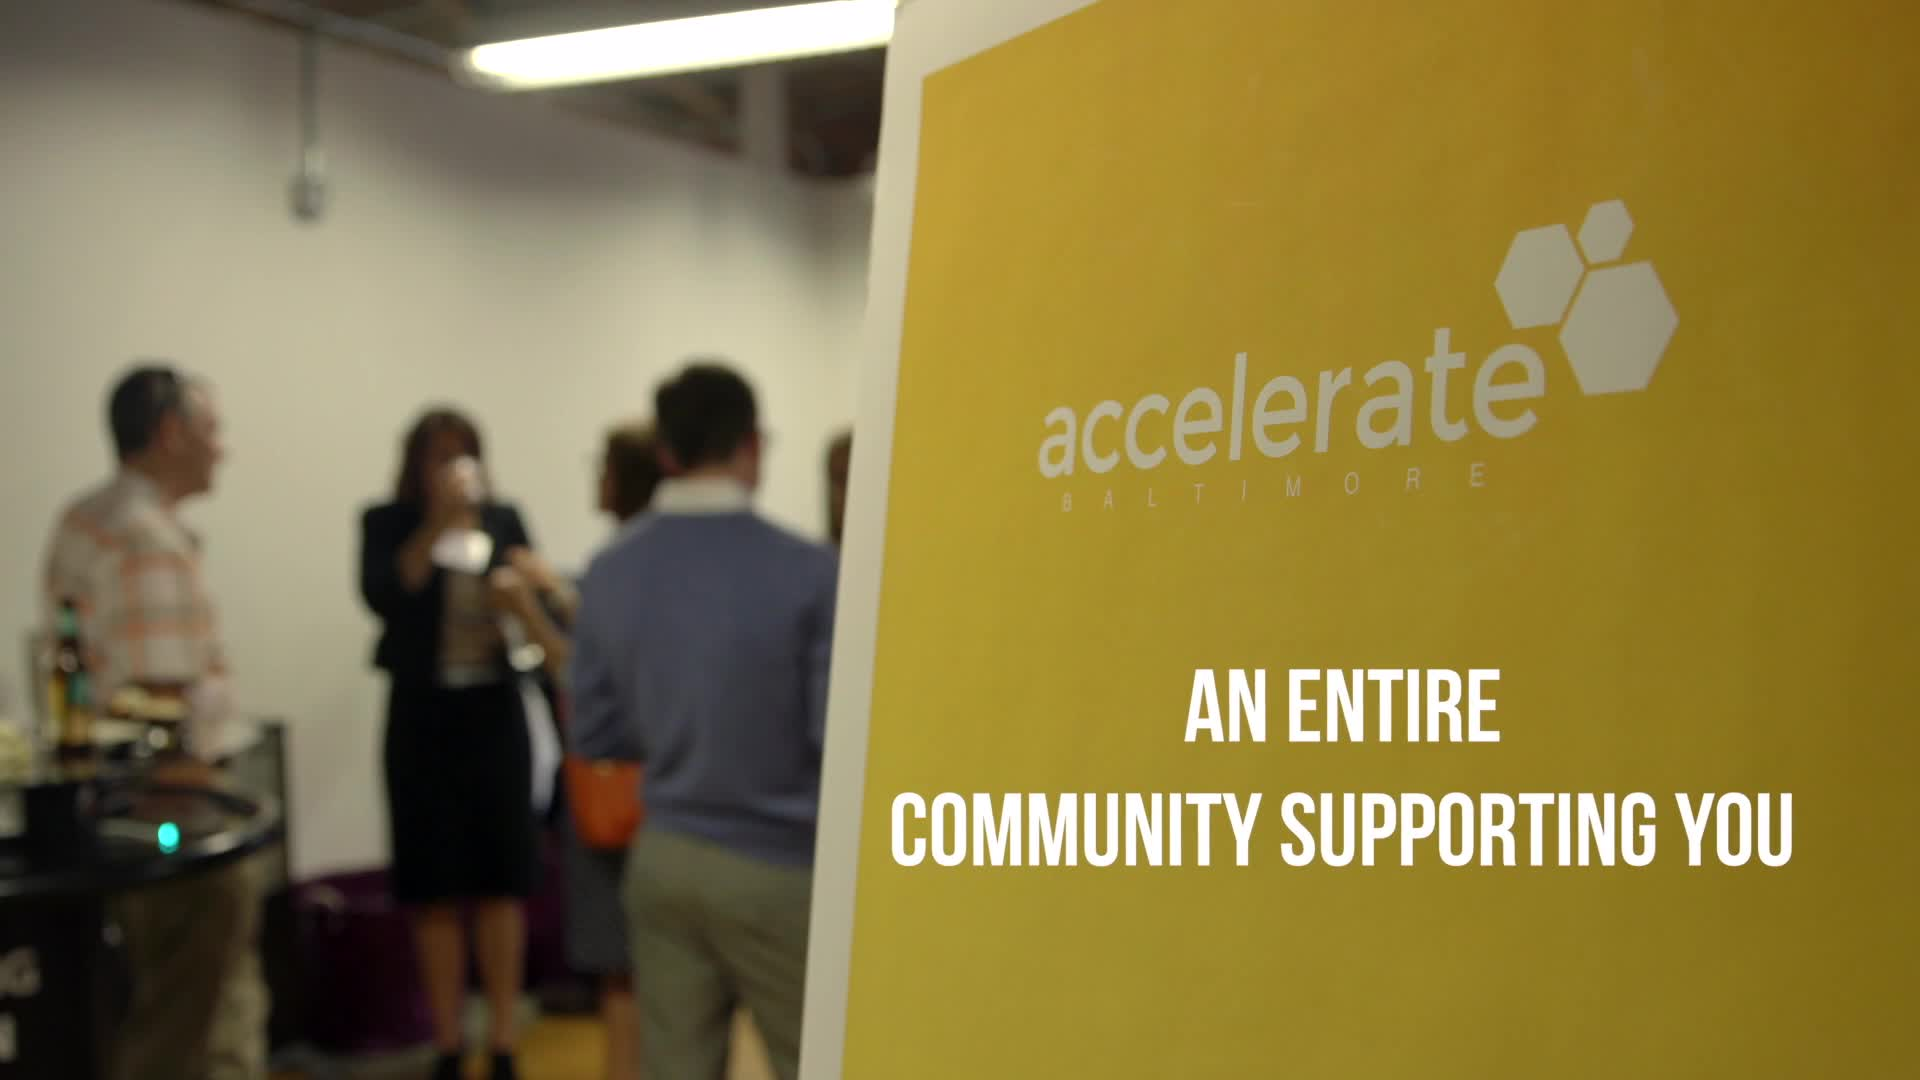 Accelerate Baltimore is a tech startup accelerator located in Baltimore MD. We're looking for our next cohort of 6 companies move their companies forward with up to $125,000 in seed funding and a 13 week program.